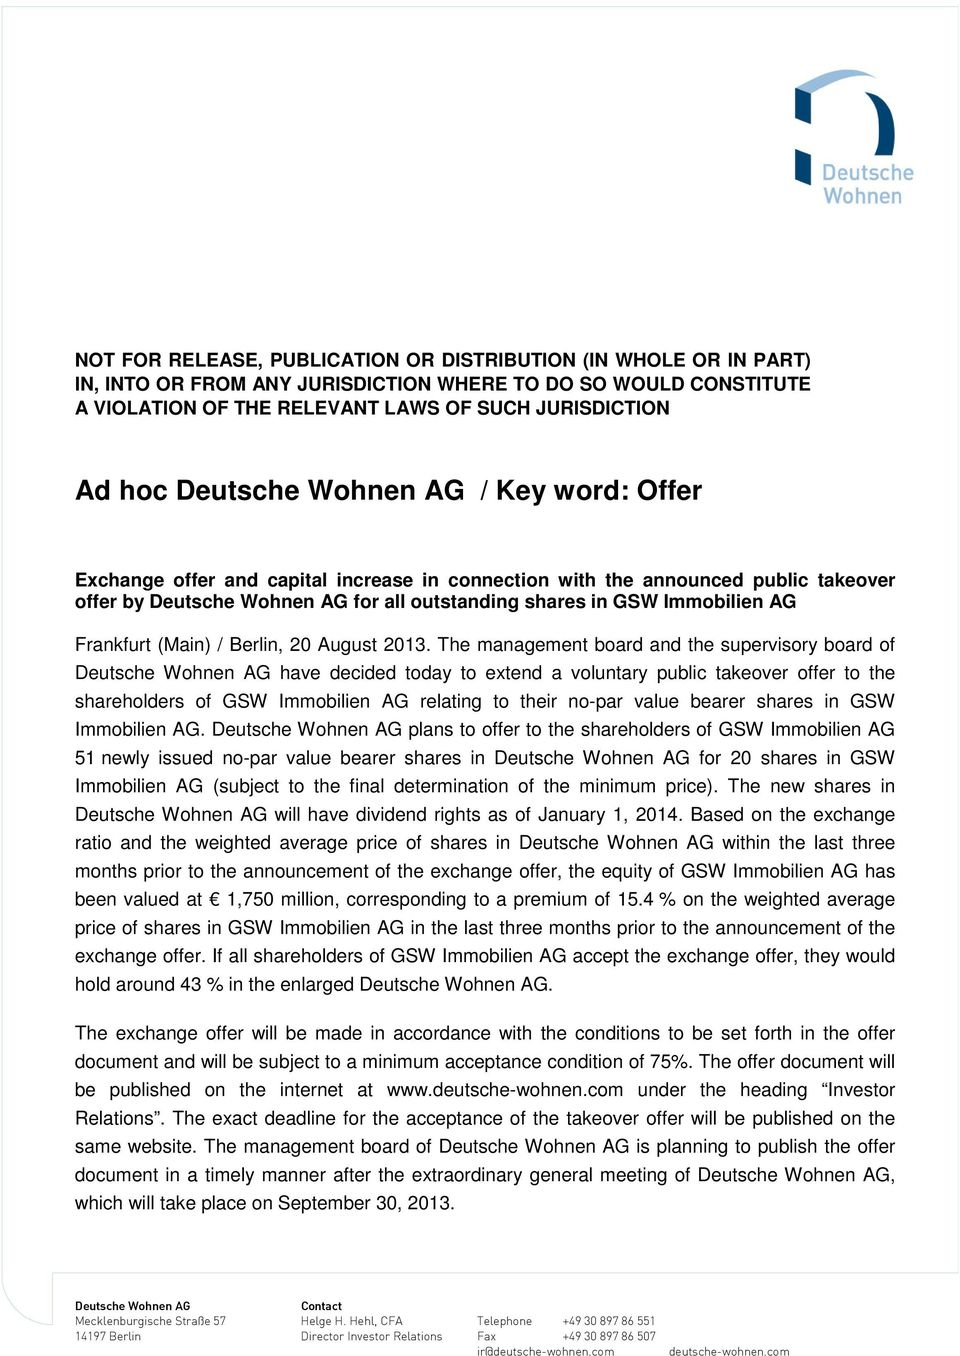 The management board and the supervisory board of have decided today to extend a voluntary public takeover offer to the shareholders of GSW Immobilien AG relating to their no-par value bearer shares